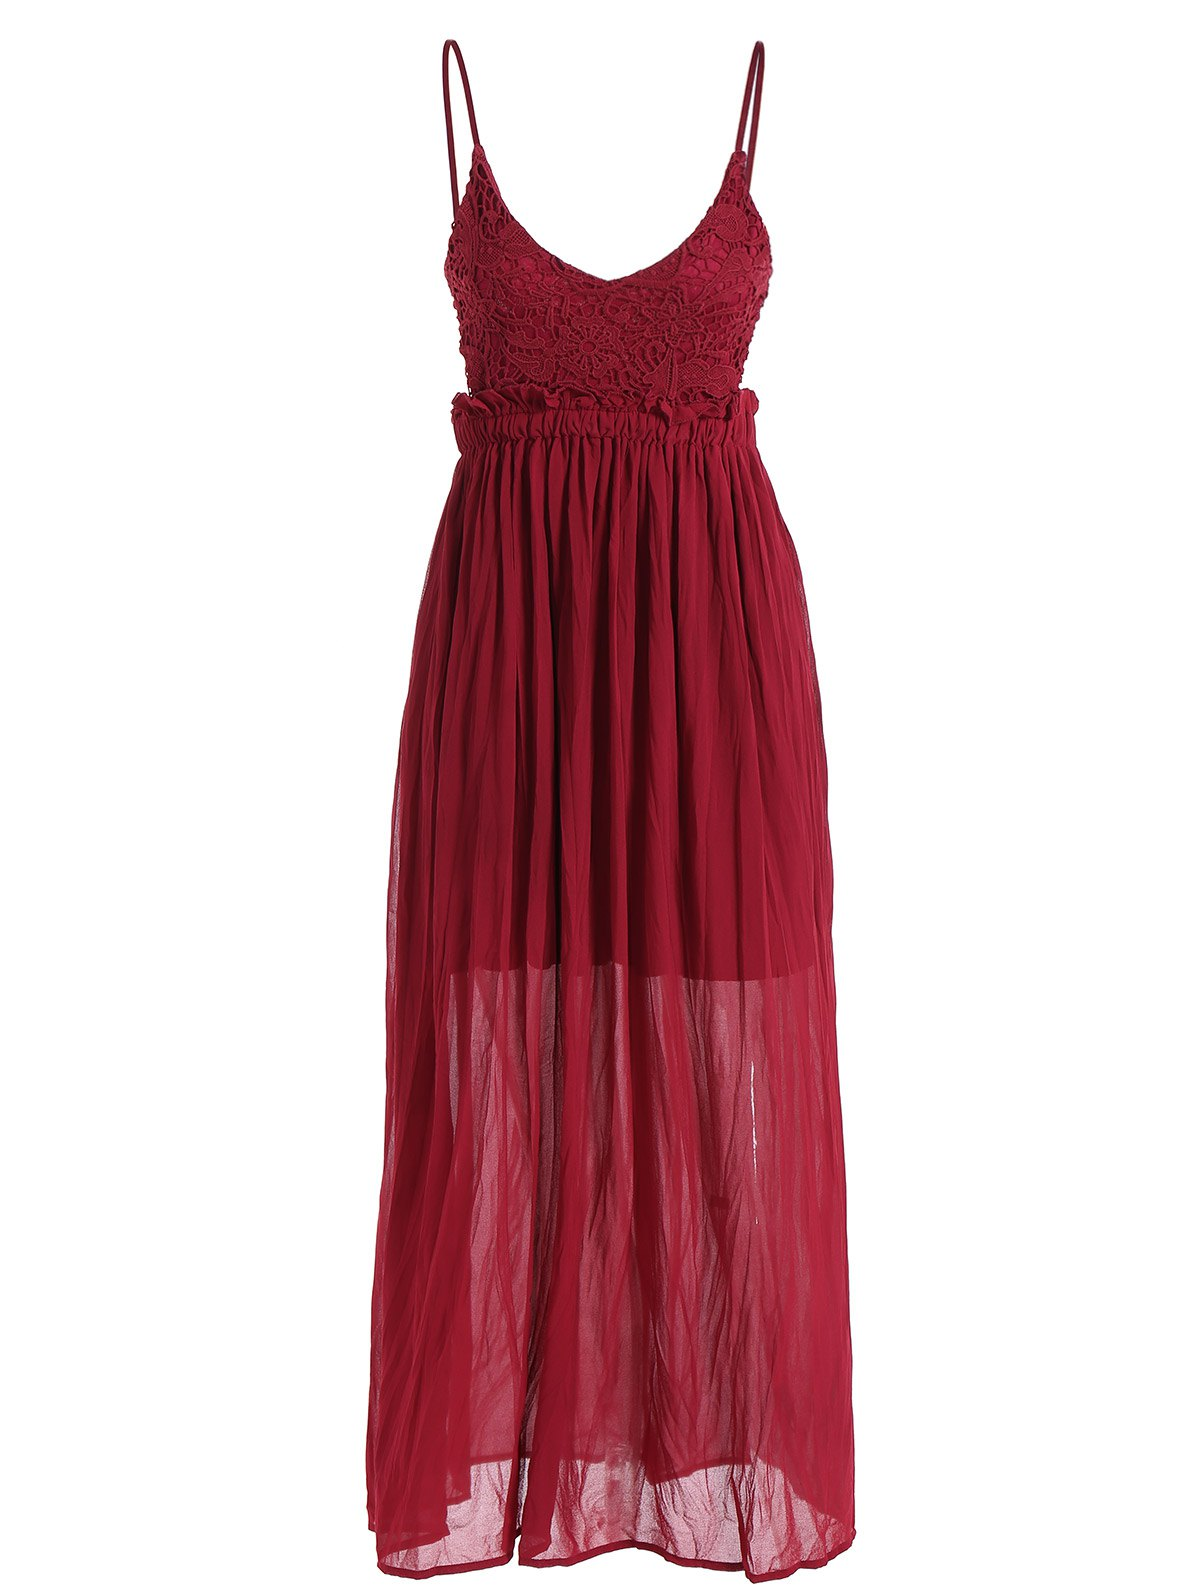 Backless Chiffon Slip Peplum Summer Maxi Cocktail Dress - WINE RED M